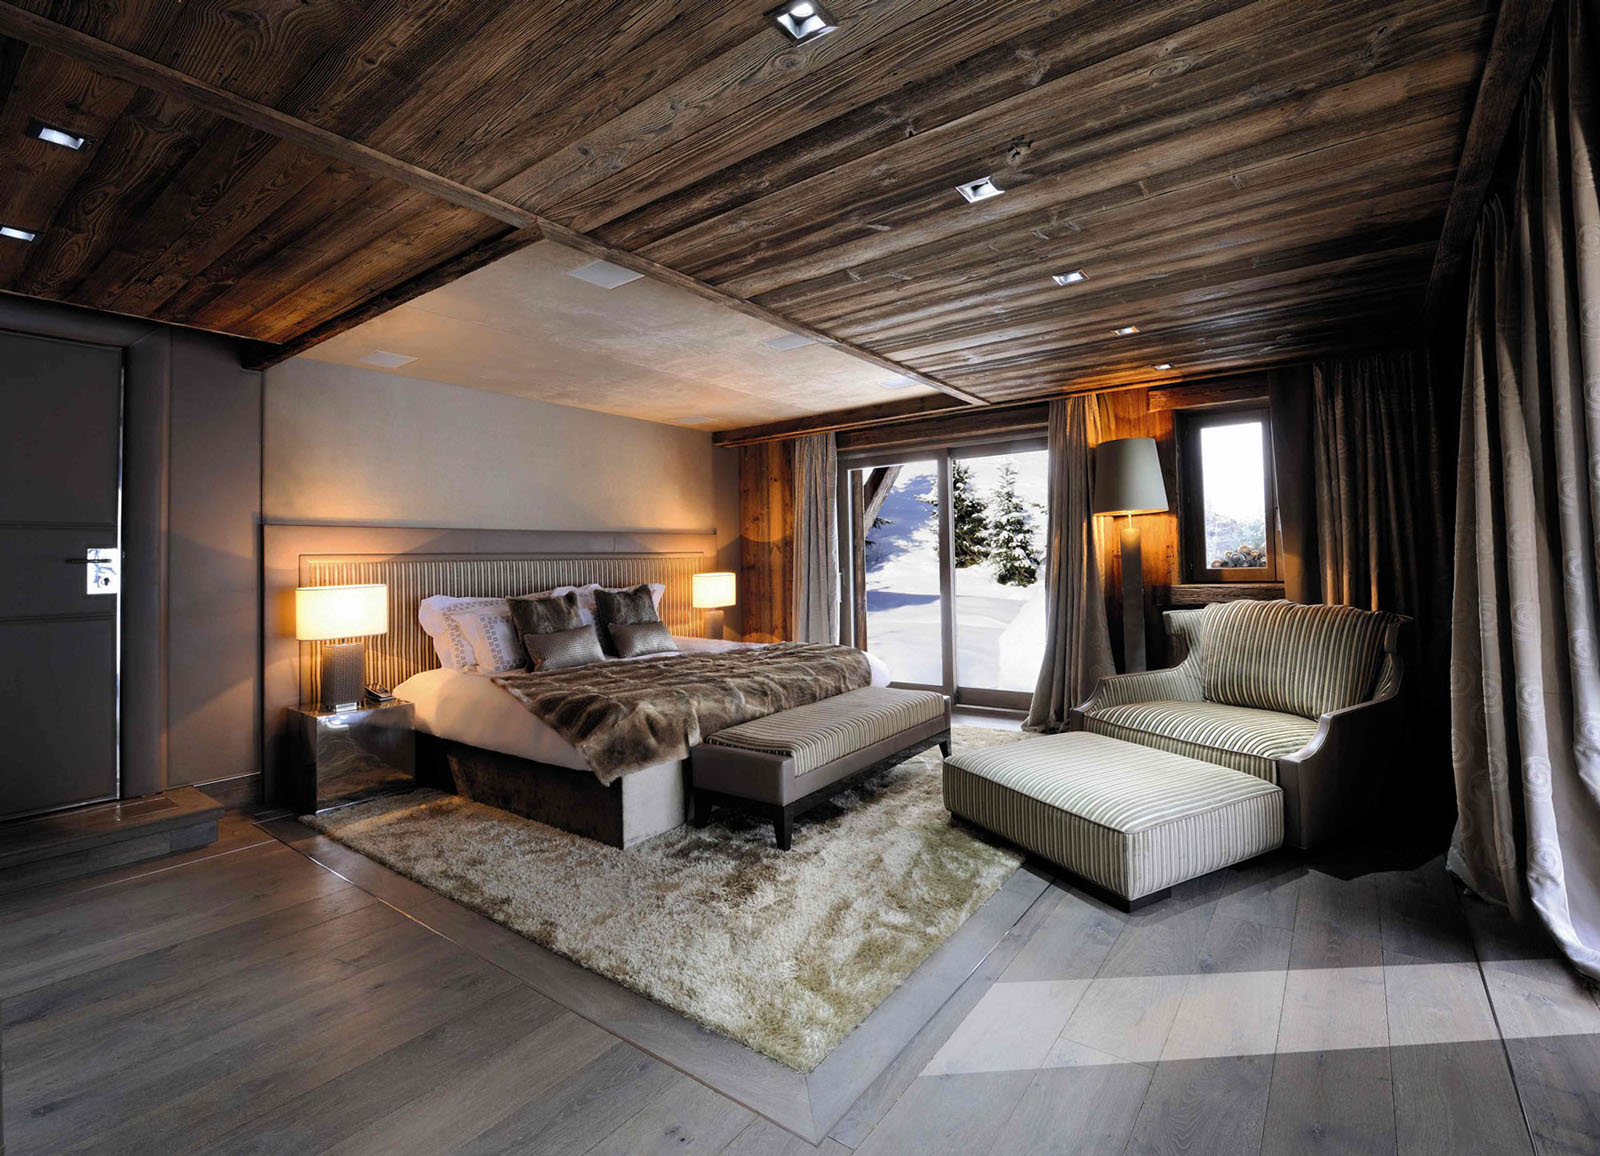 chic modern rustic chalet in the rh ne alpes idesignarch. Black Bedroom Furniture Sets. Home Design Ideas